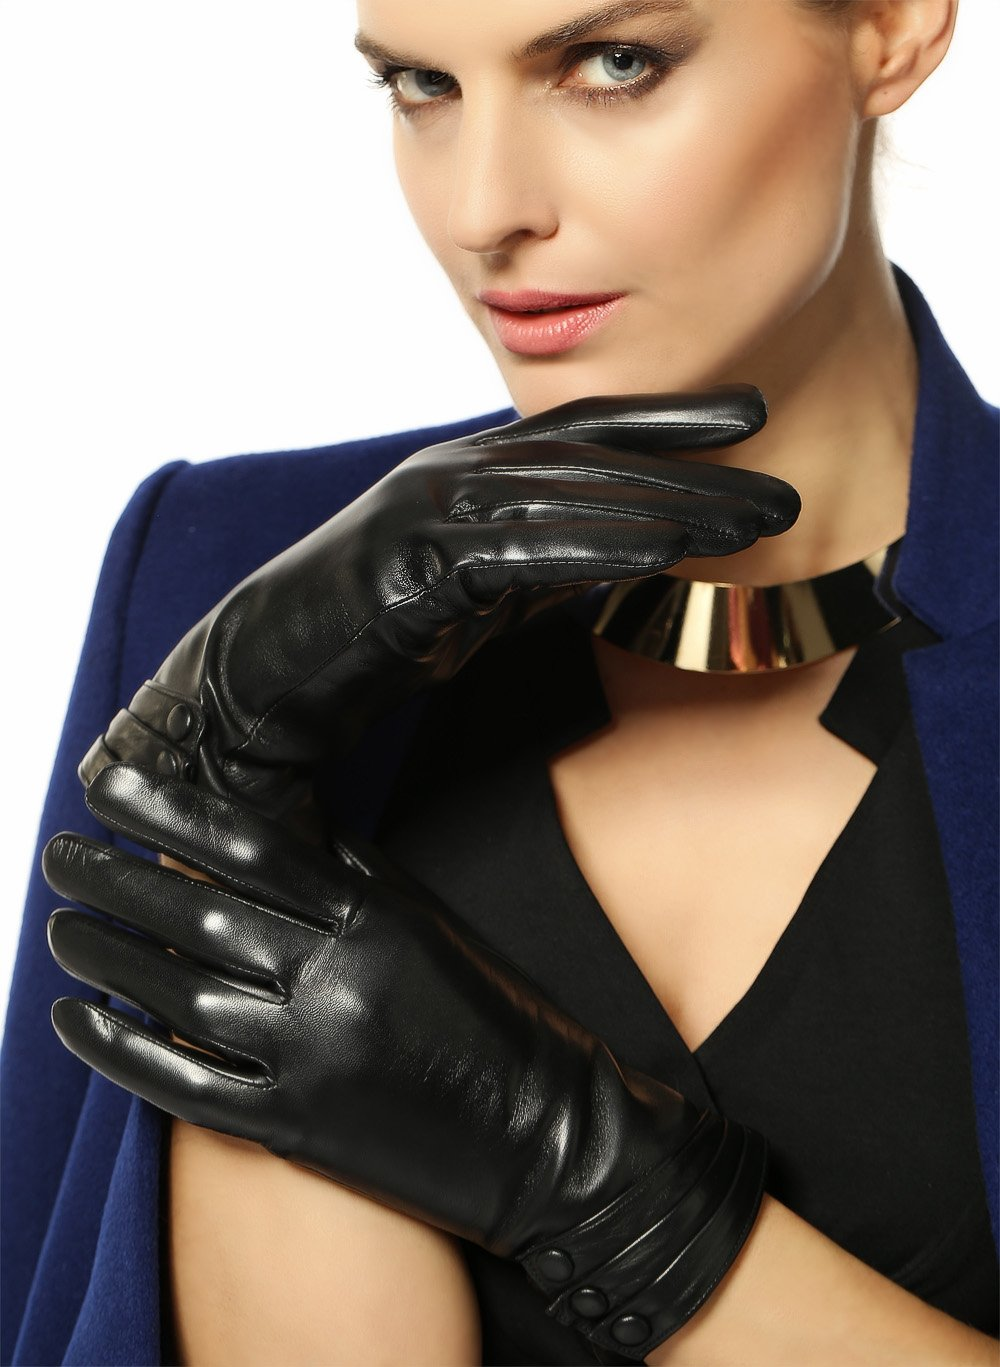 Womens leather gloves vancouver - Bestselling Women S Winter Warm Nappa Leather Gloves Plush Cashmere Lining Sports Apparel Amazon Canada